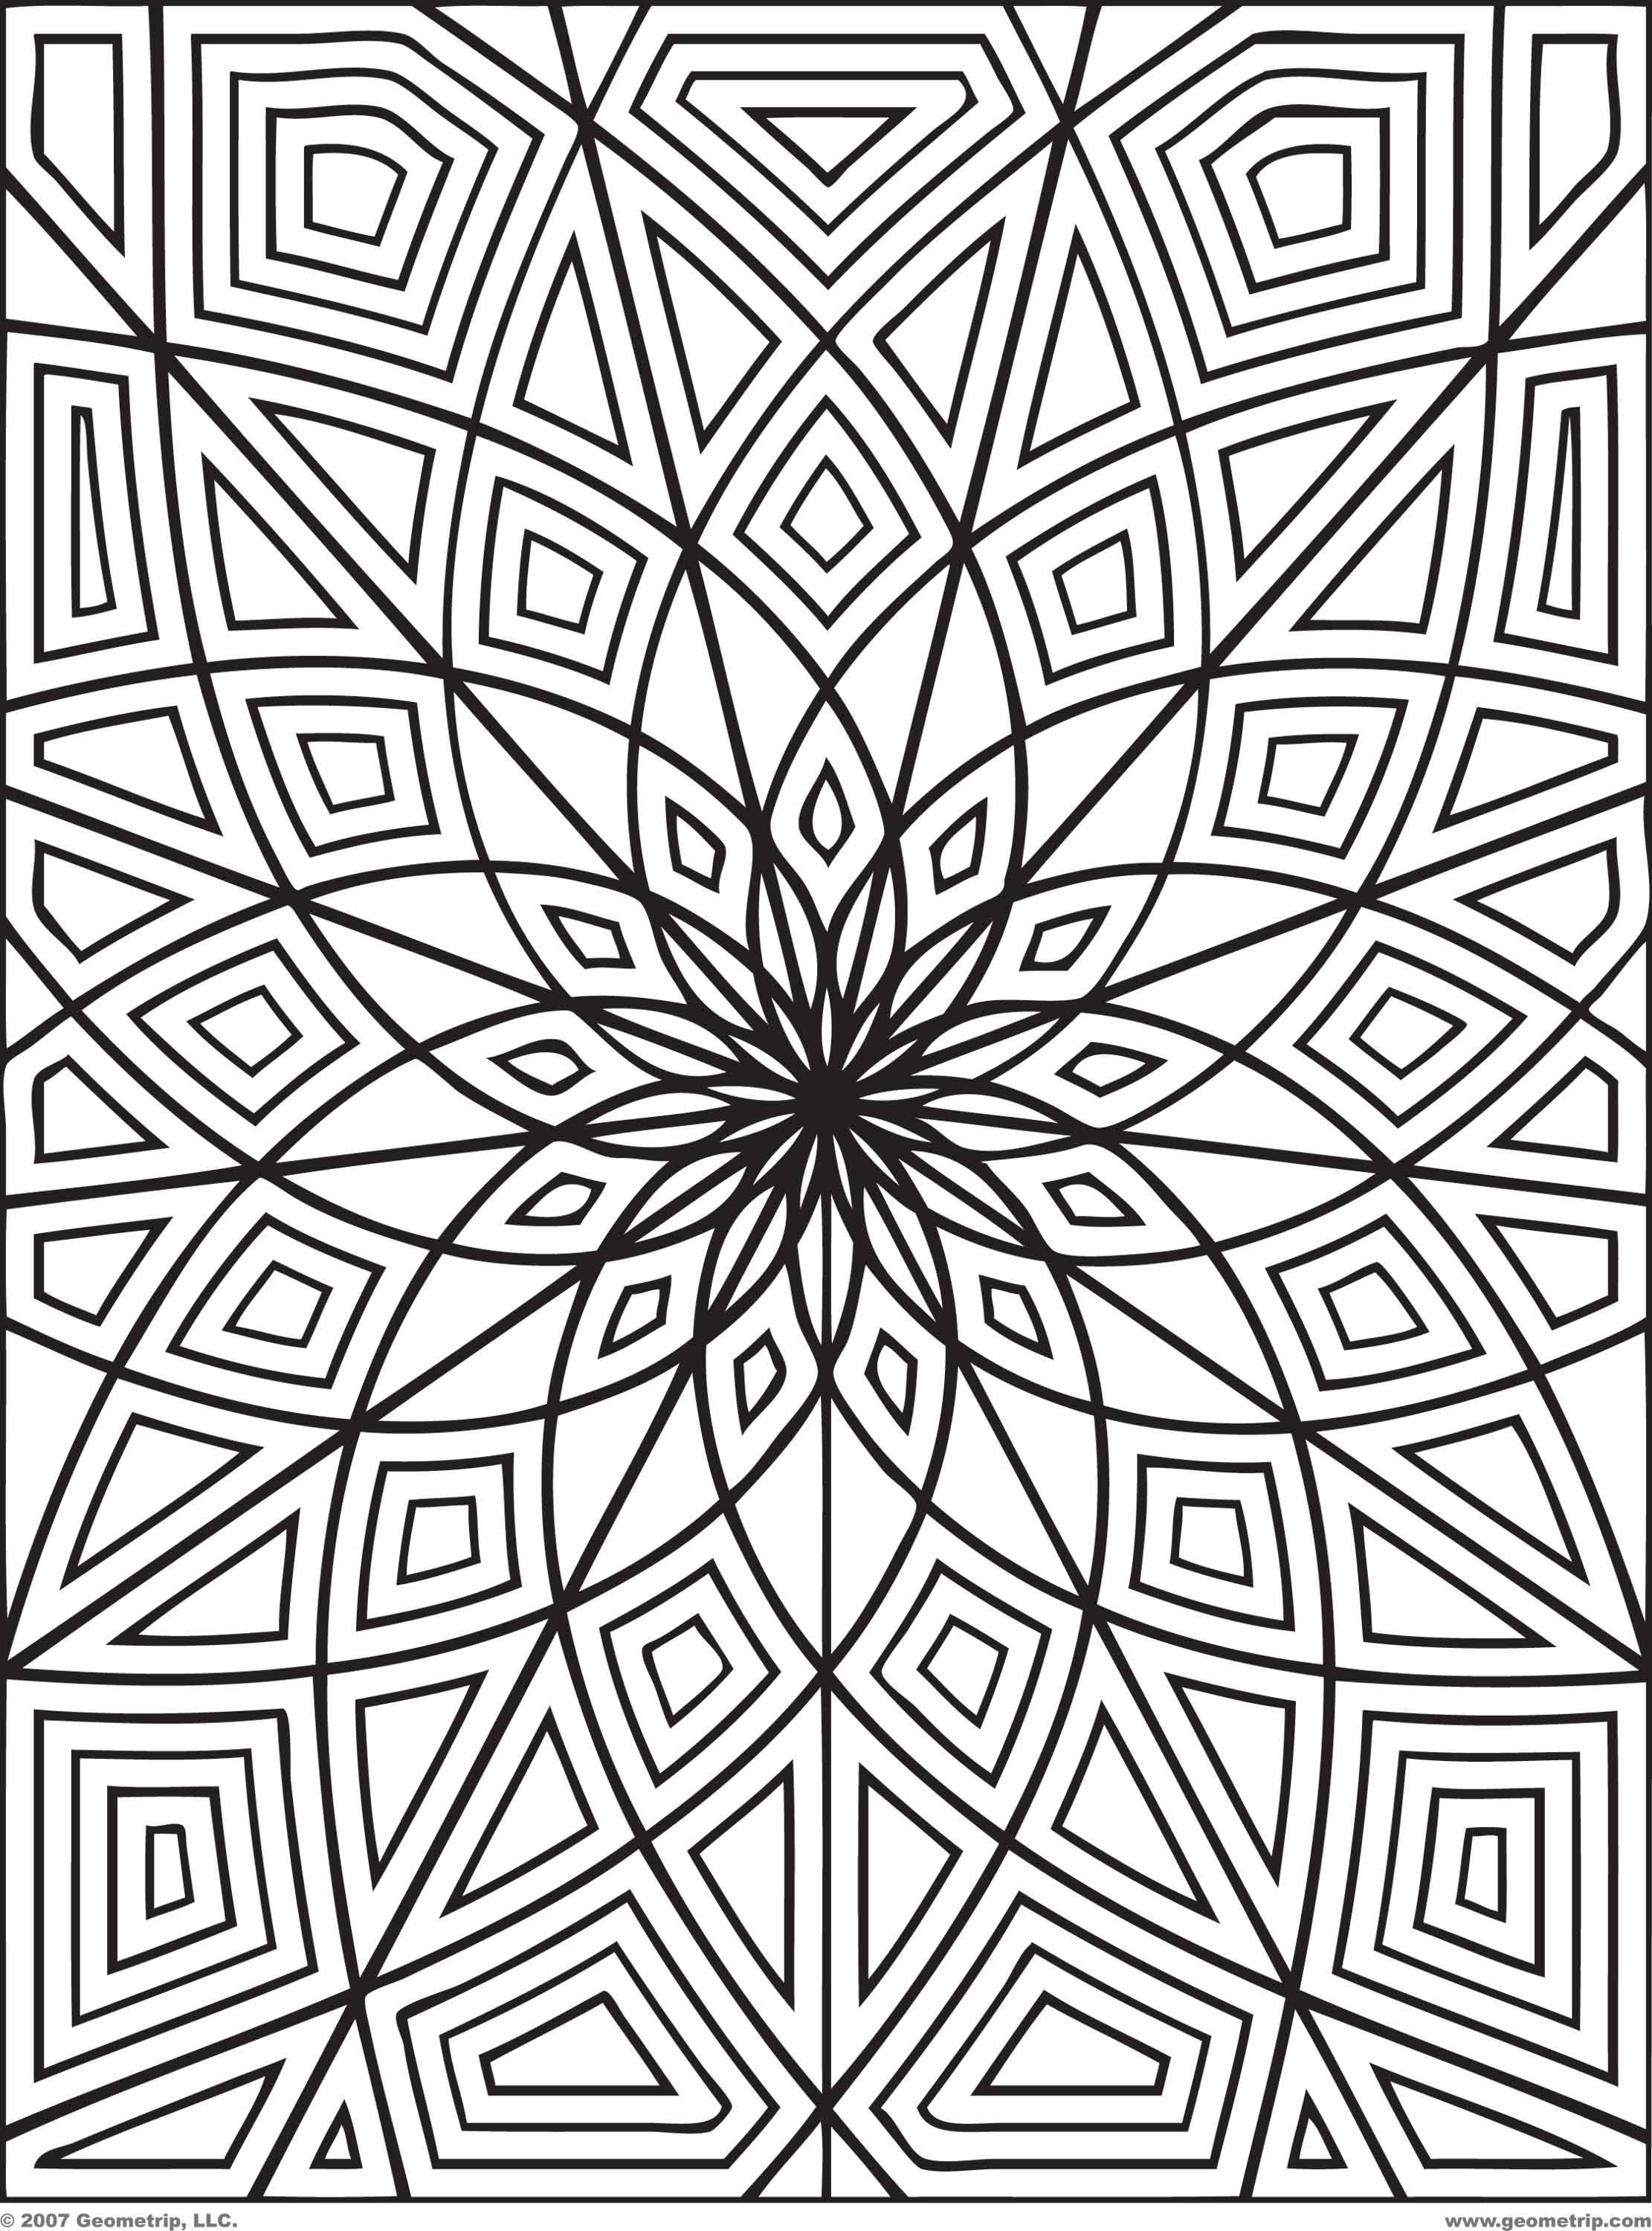 Pages to color for adults - Free Colouring Pages For Adults Printable Detailed Coloring Pages